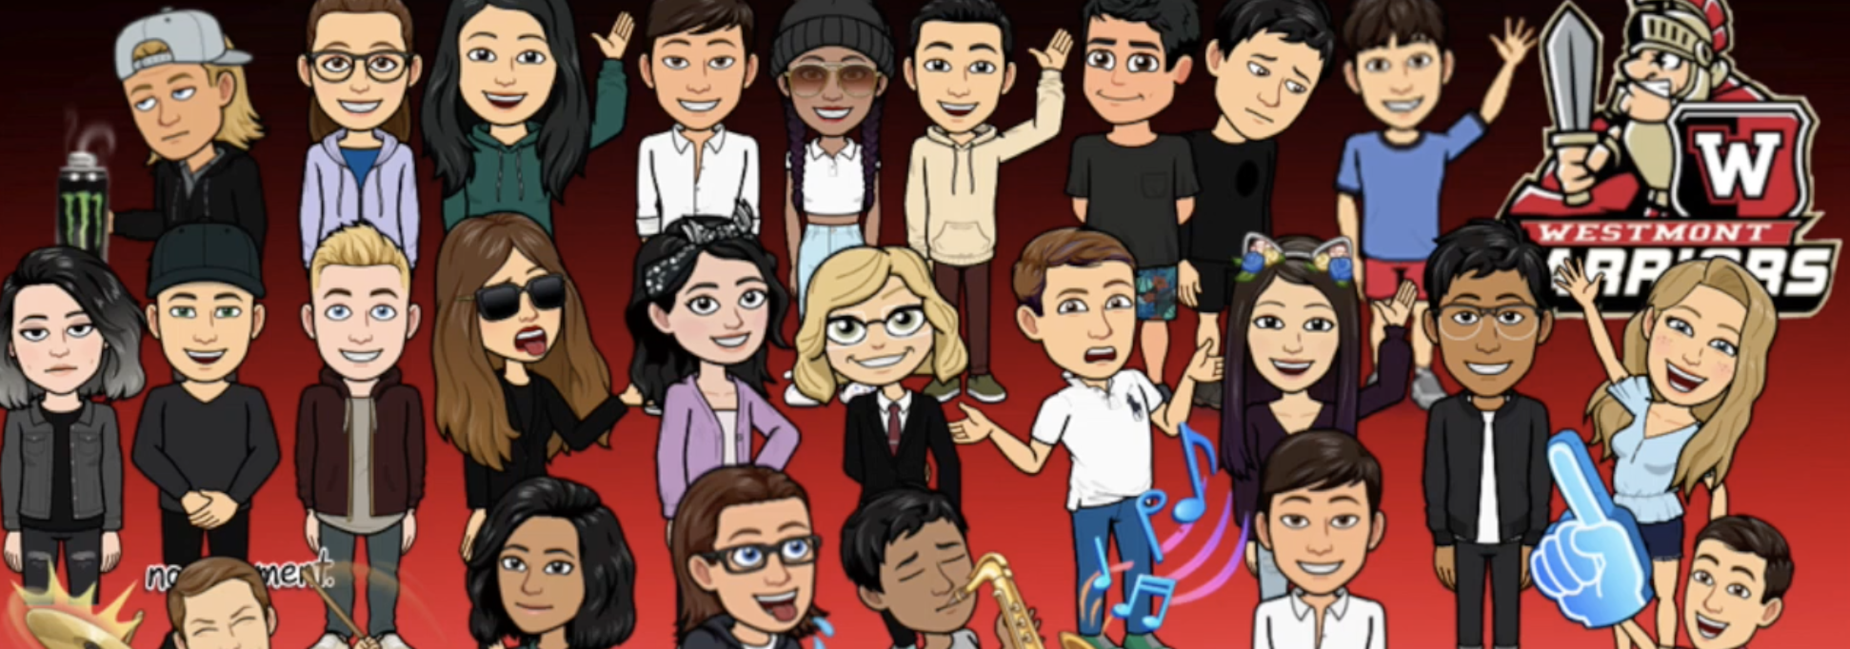 Image of animated character versions of students in the Wind Ensemble